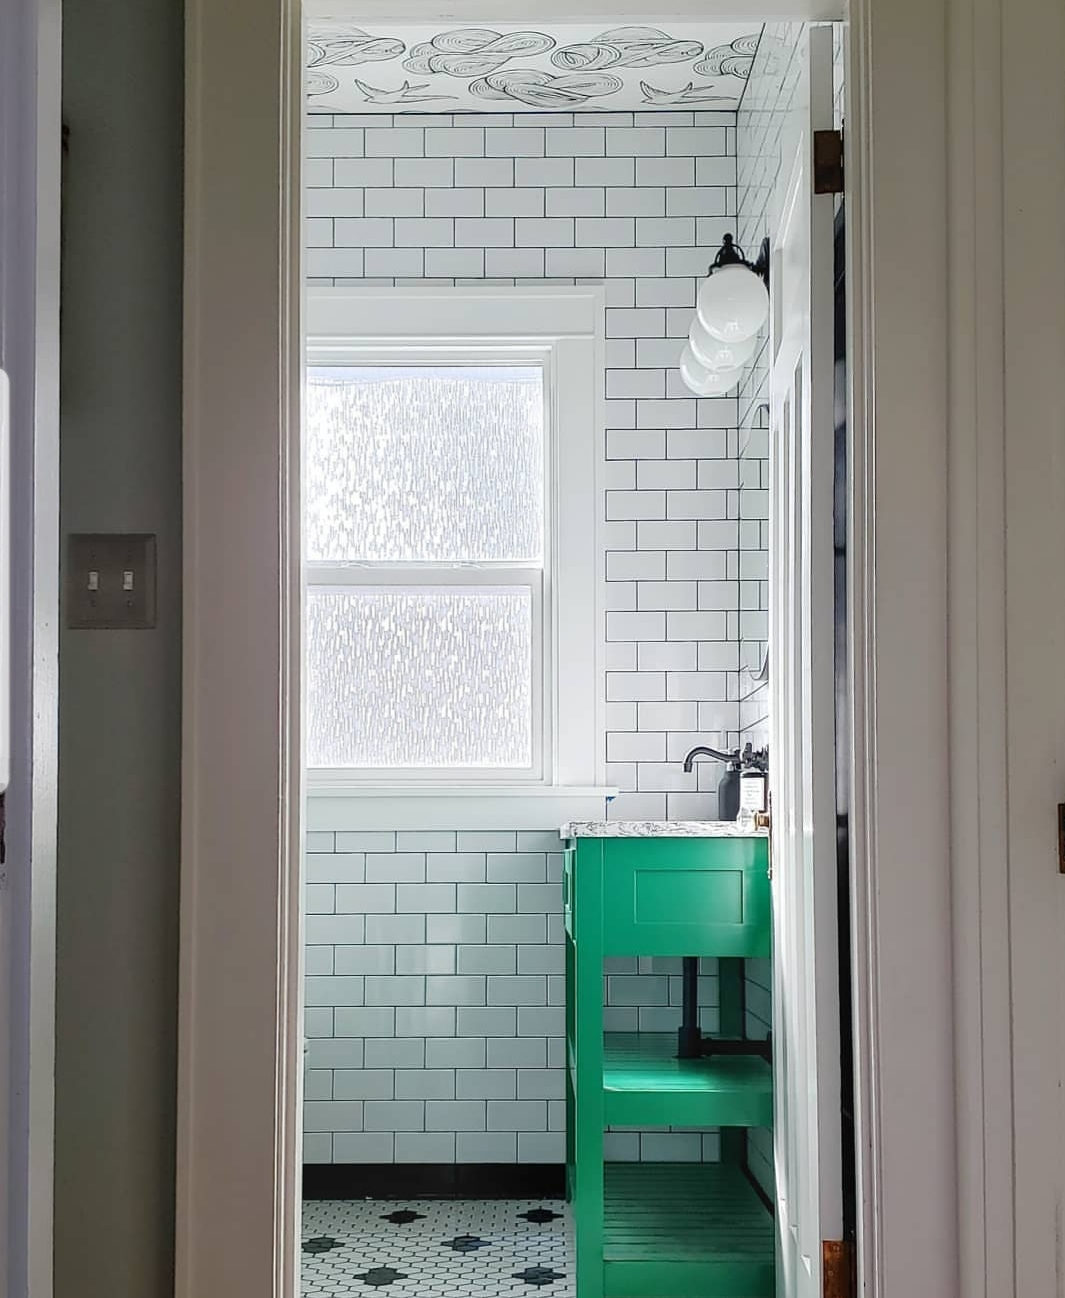 Seattle Bathroom Remodel  - Designed with classic elements like floor to ceiling subway tile, the wallpapered ceiling and pop of color on the custom vanity keep things fresh. A custom 5' medicine cabinet provide power and storage for items like an electric toothbrush.   Status  - Complete; pro photos coming soon   Completion  - Early 2019